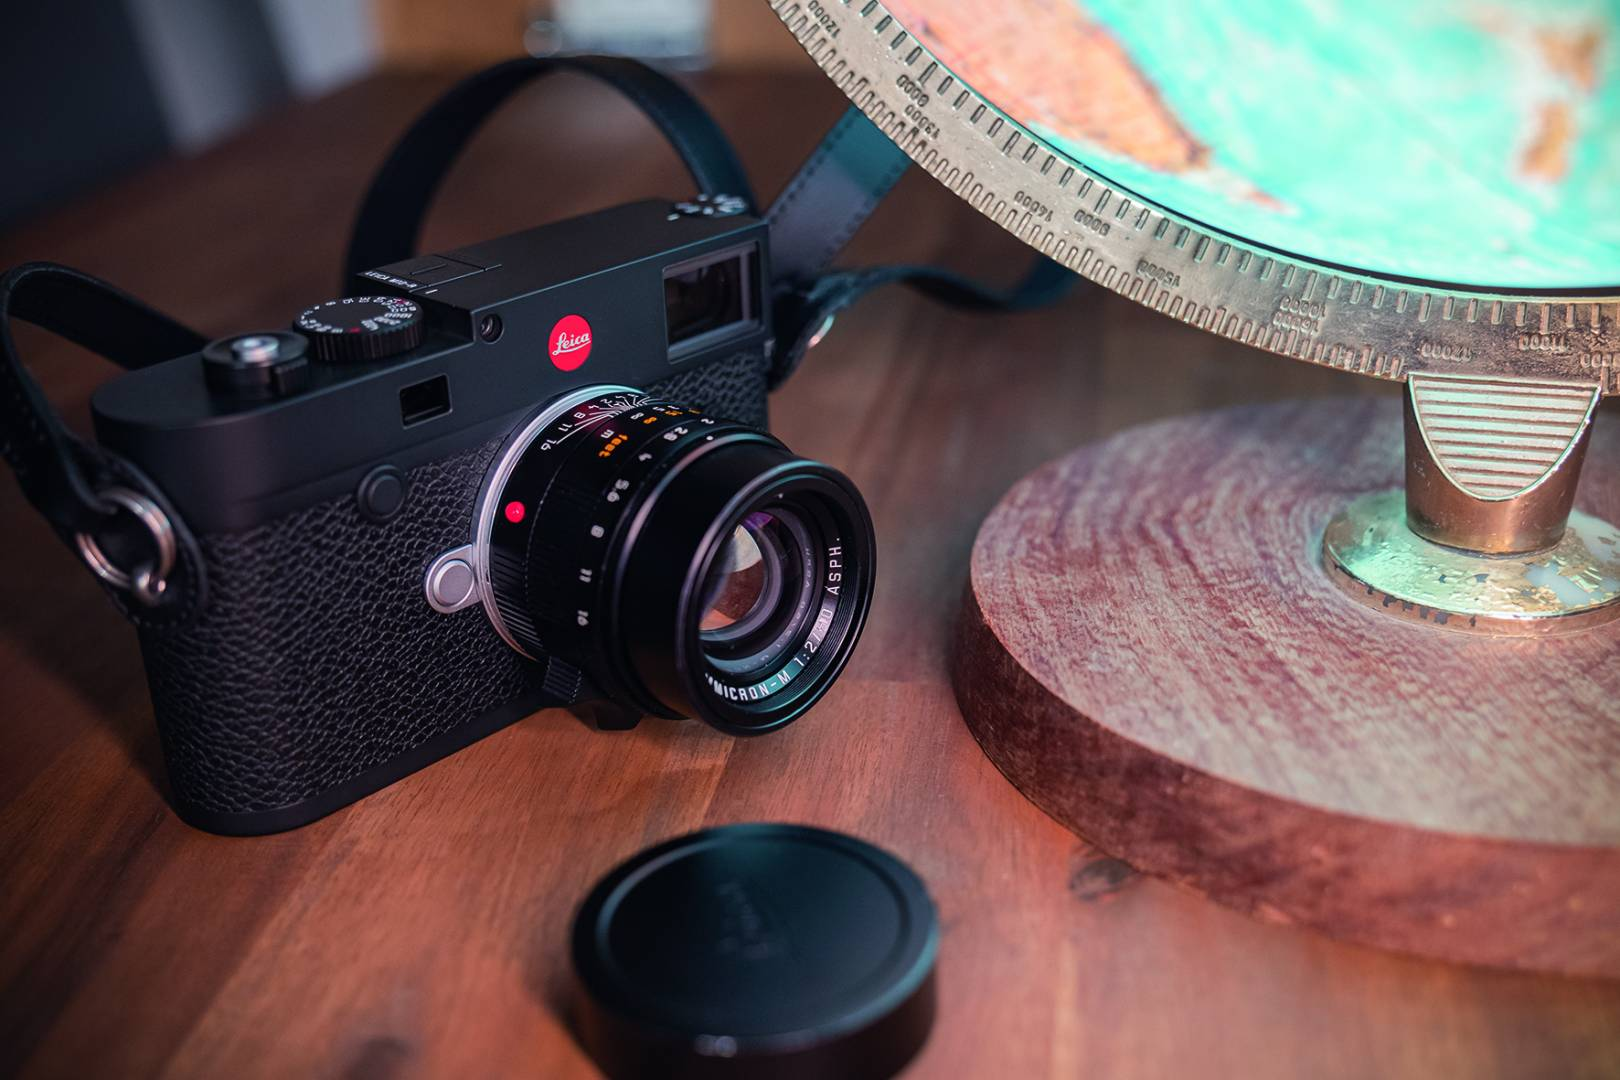 The new M10-R, image courtesy of Leica Camera AG